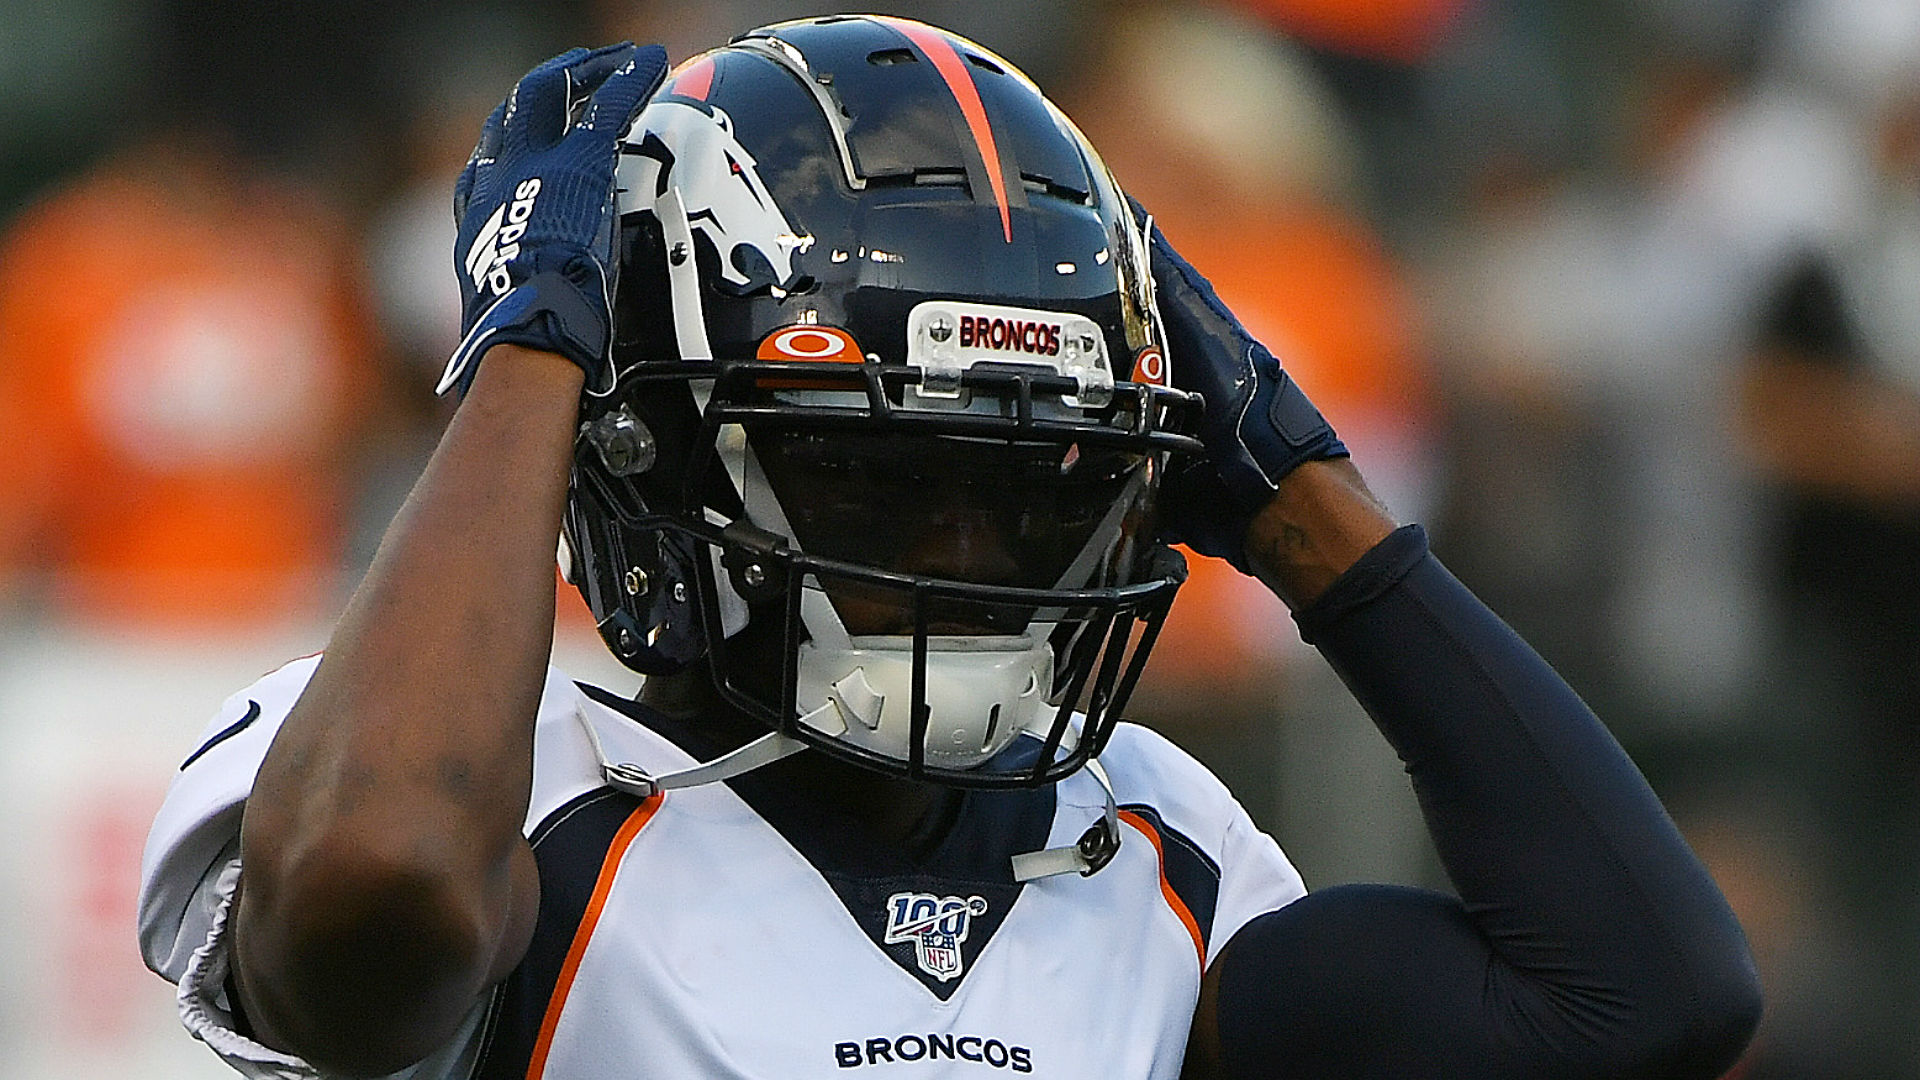 Emmanuel Sanders and Mohamed Sanu were traded, while Adrian Pederson declared himself fit to play.